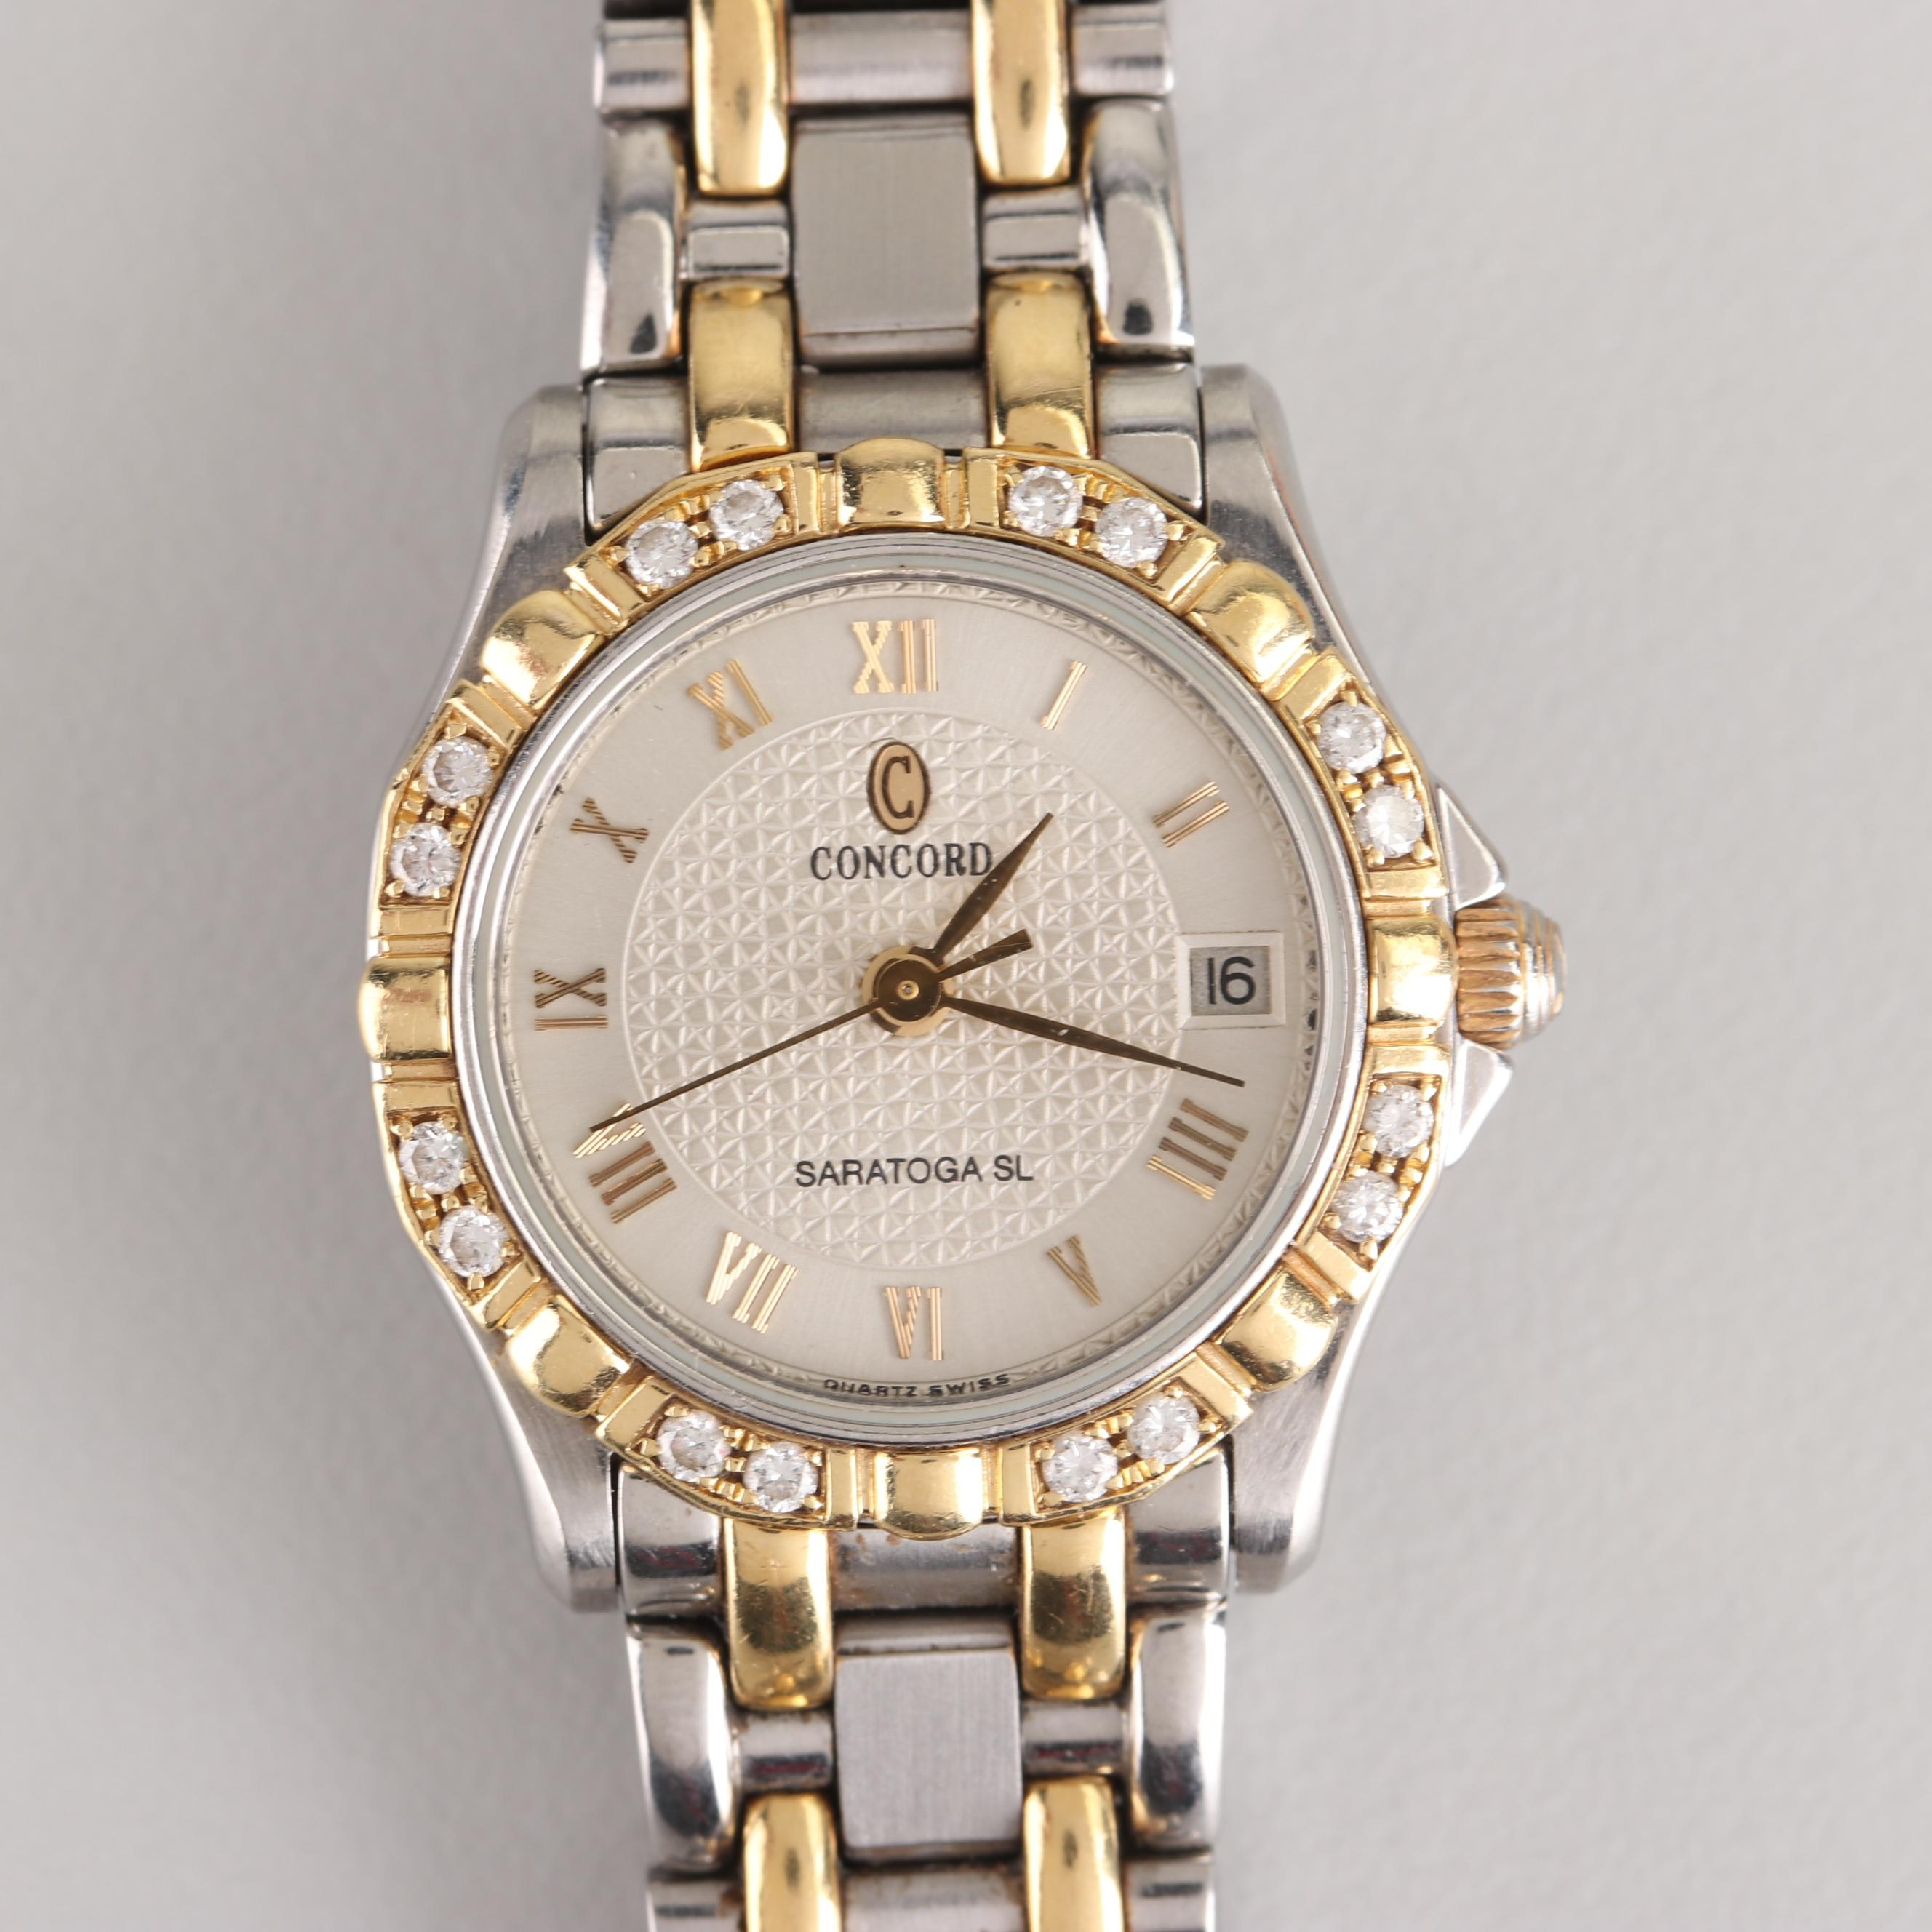 Concord Saratoga SL 18K Yellow Gold Stainless Steel and Diamond Wristwatch